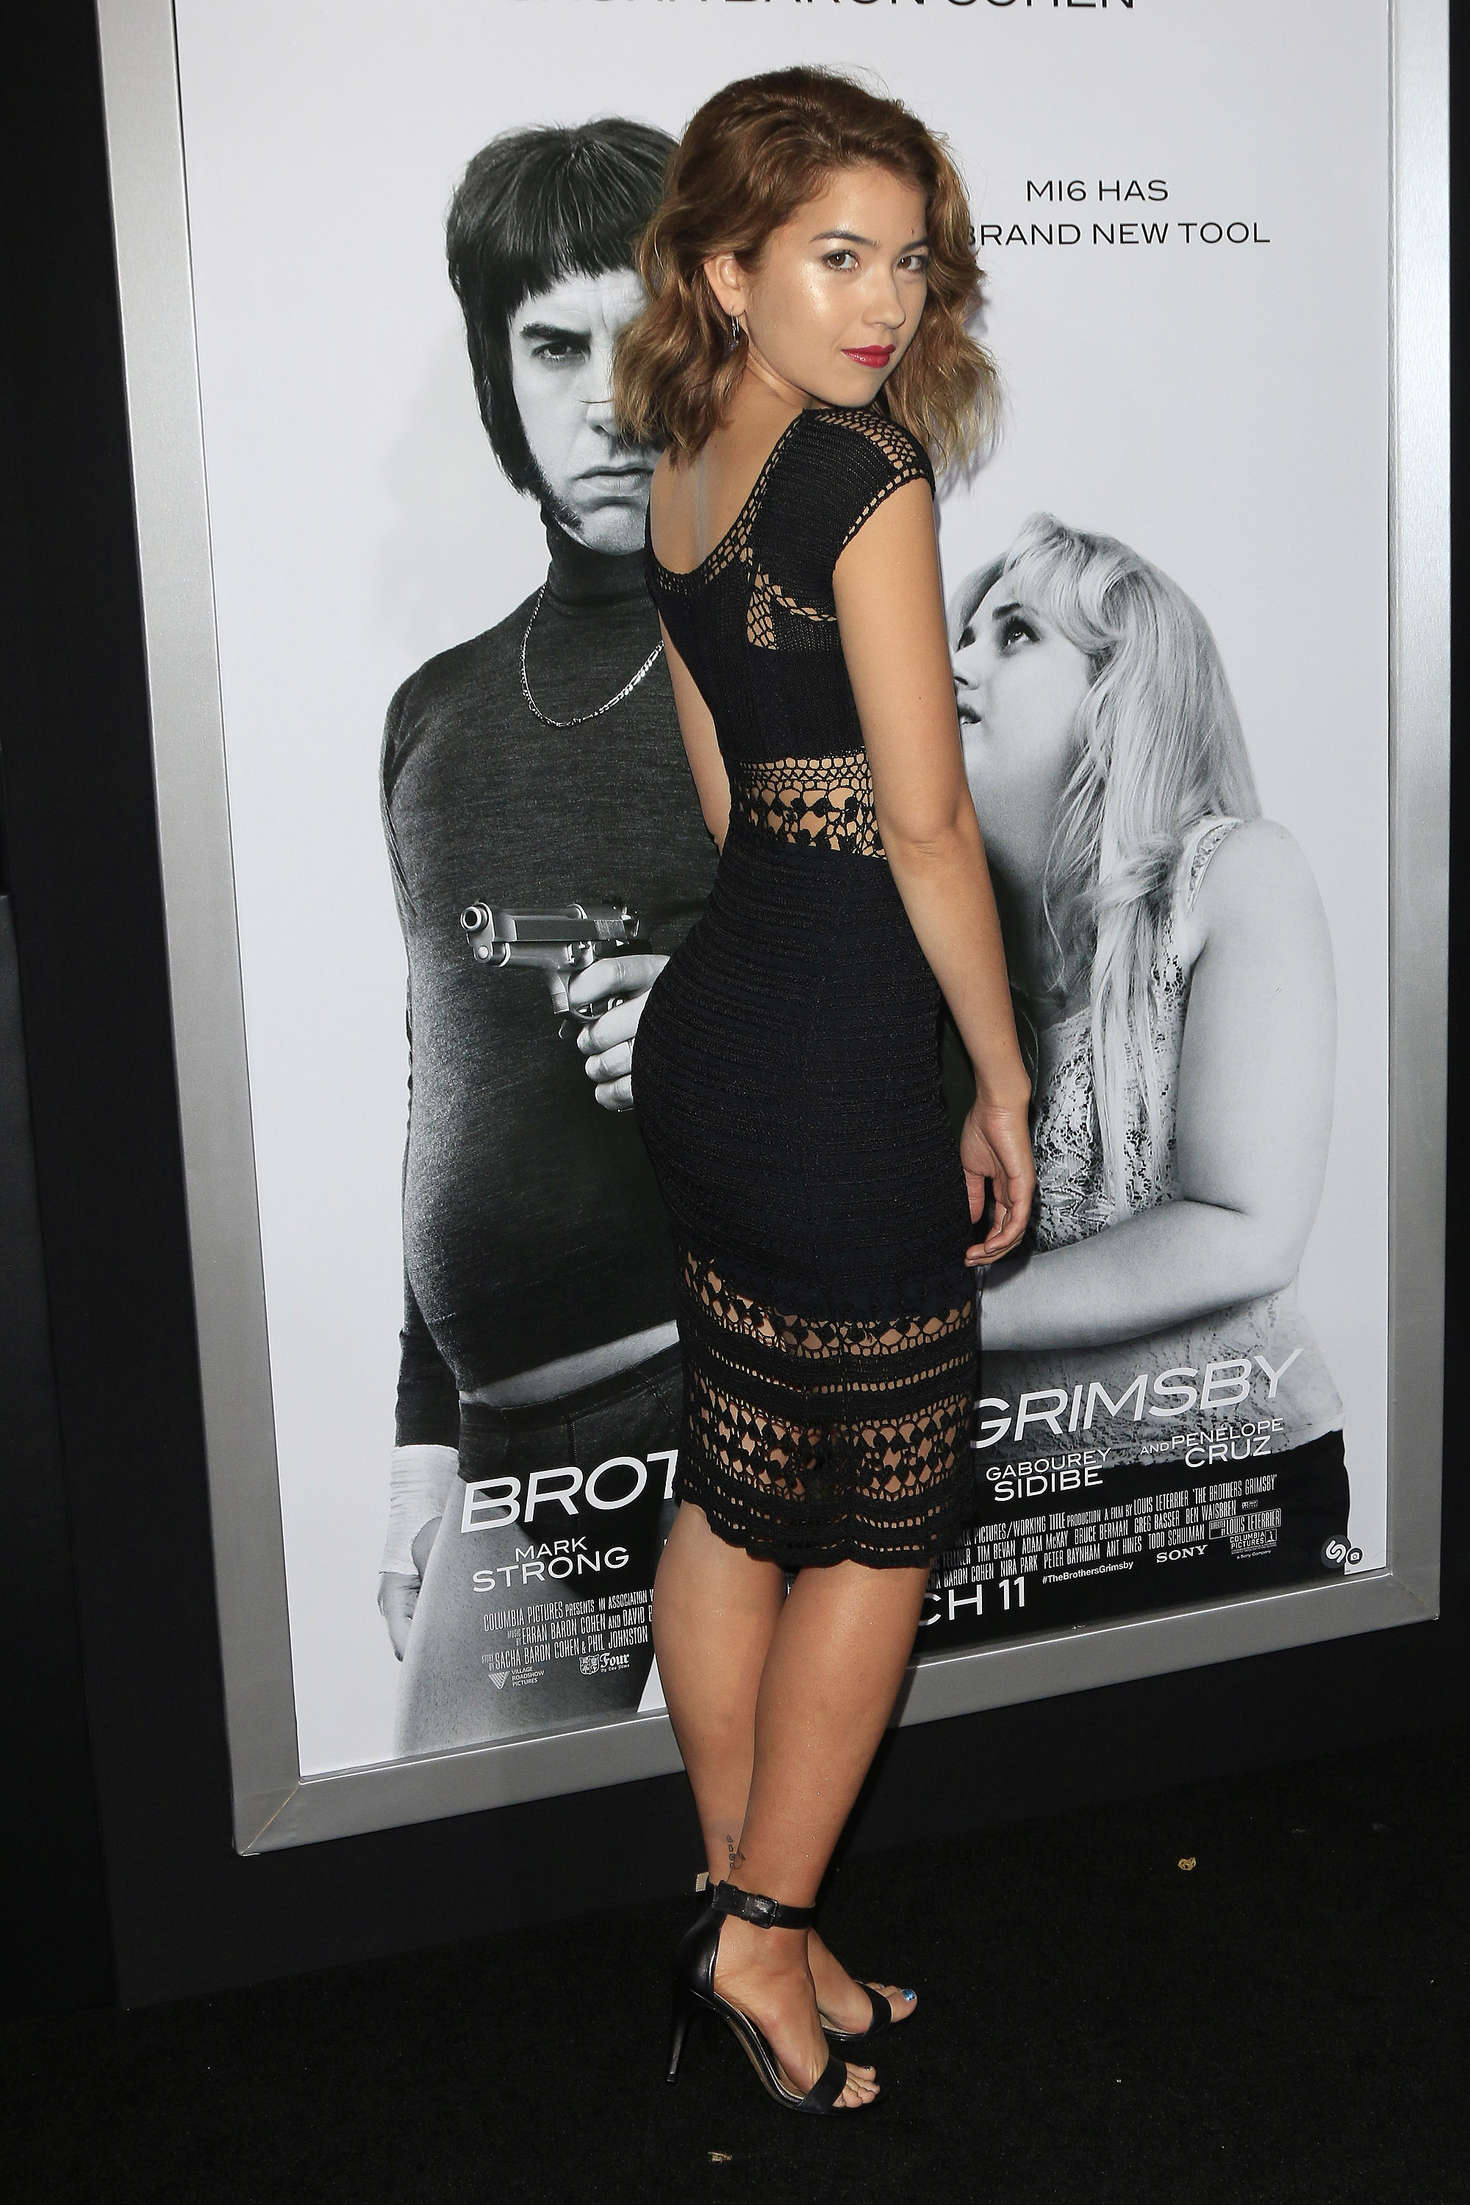 Nicole Bloom: The Brothers Grimsby Premiere -03 - GotCeleb Nicole Bloom